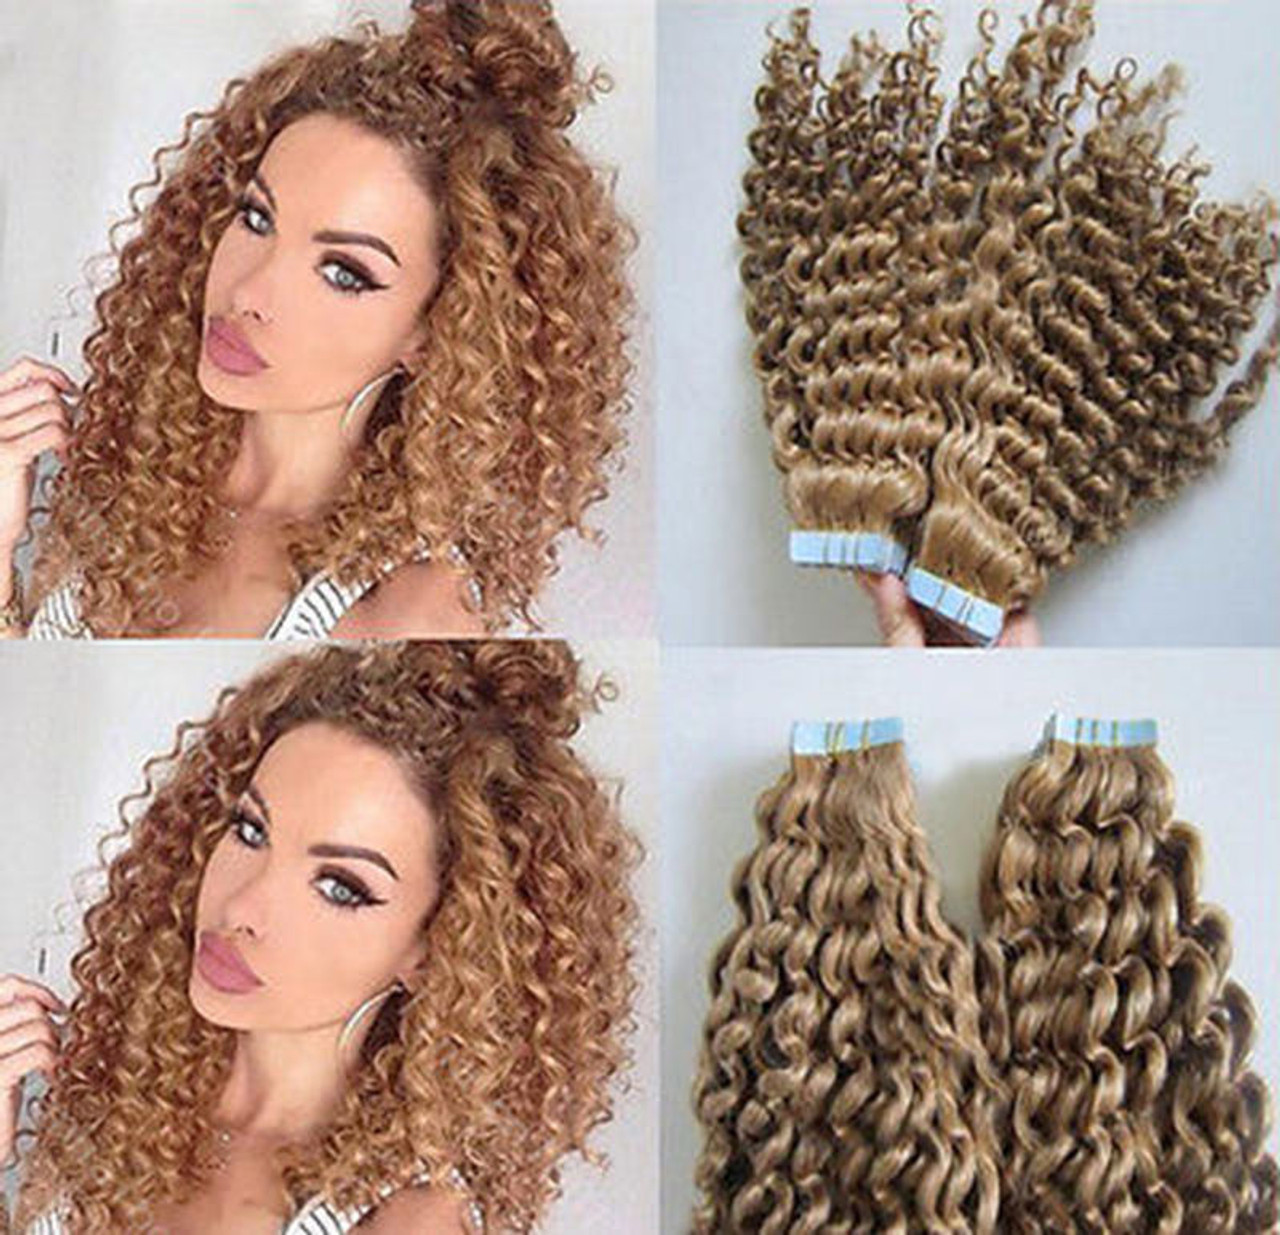 Deep curly remy tape in human hair extensions 20pcs 3gpc remeehi deep curly remy tape in human hair extensions 20pcs 3gpc pmusecretfo Gallery